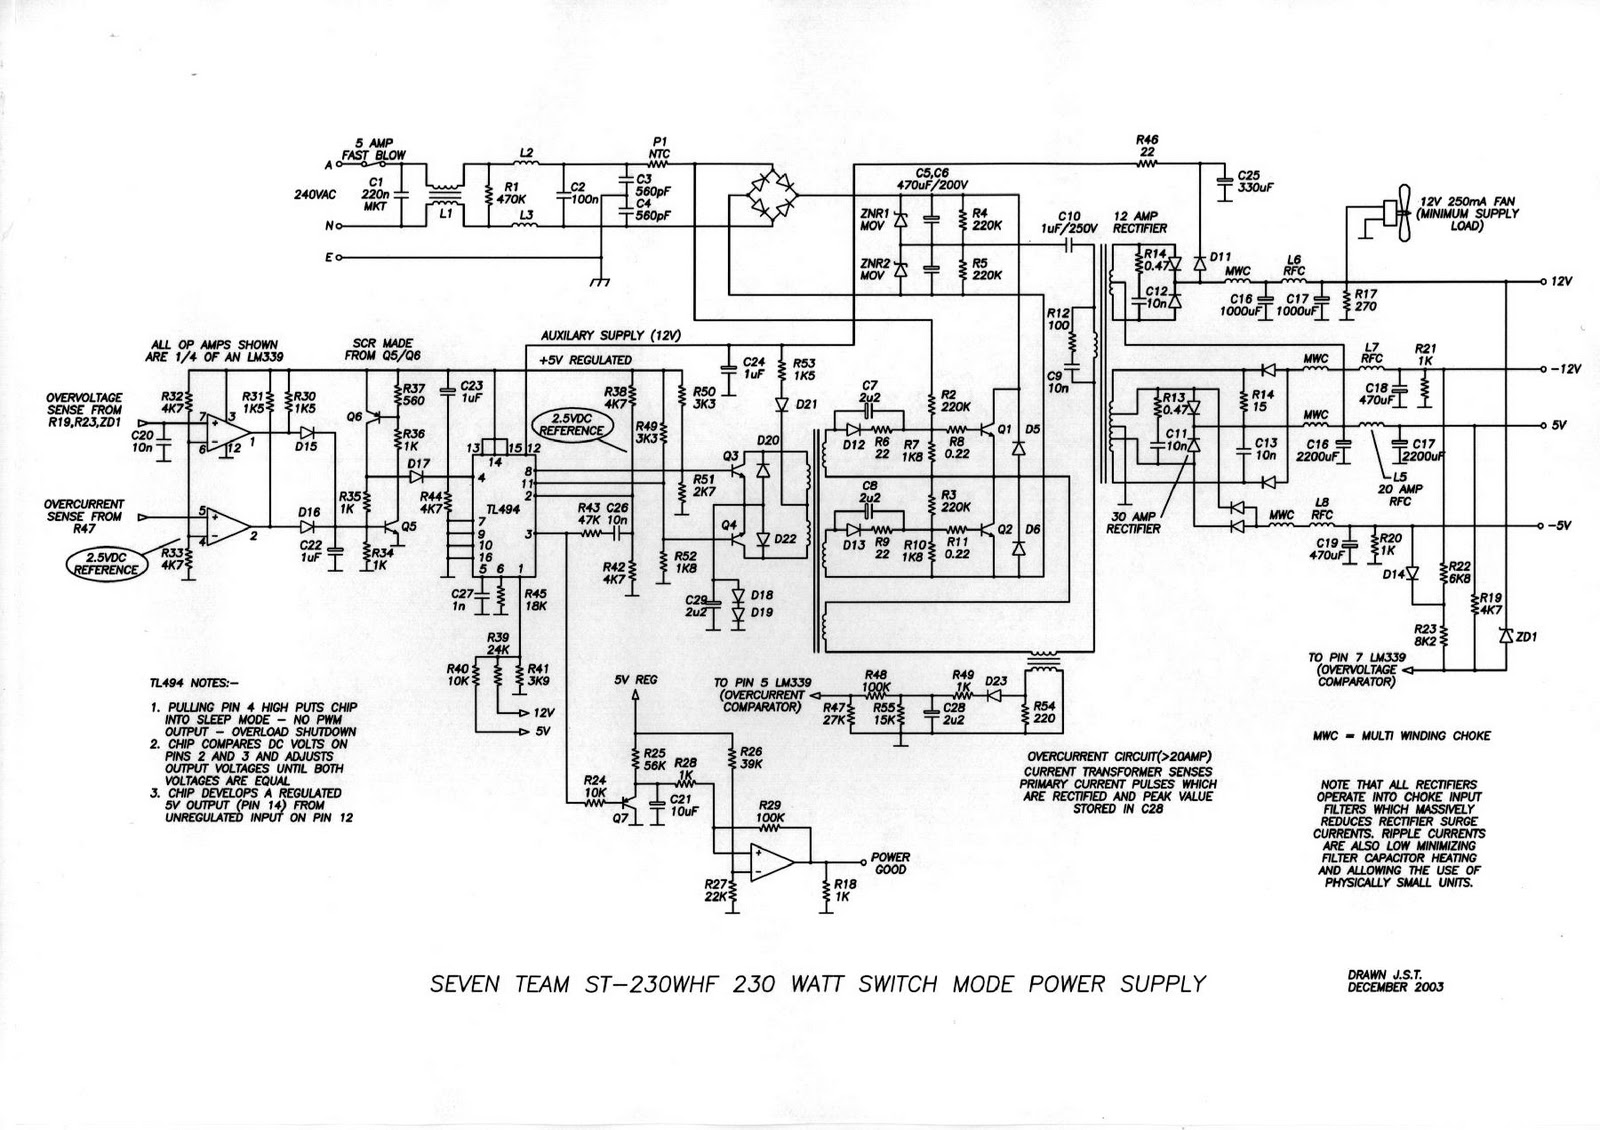 PS_ATX diagrams 620470 computer power supply wiring diagram power wiring diagram for tattoo power supply at fashall.co